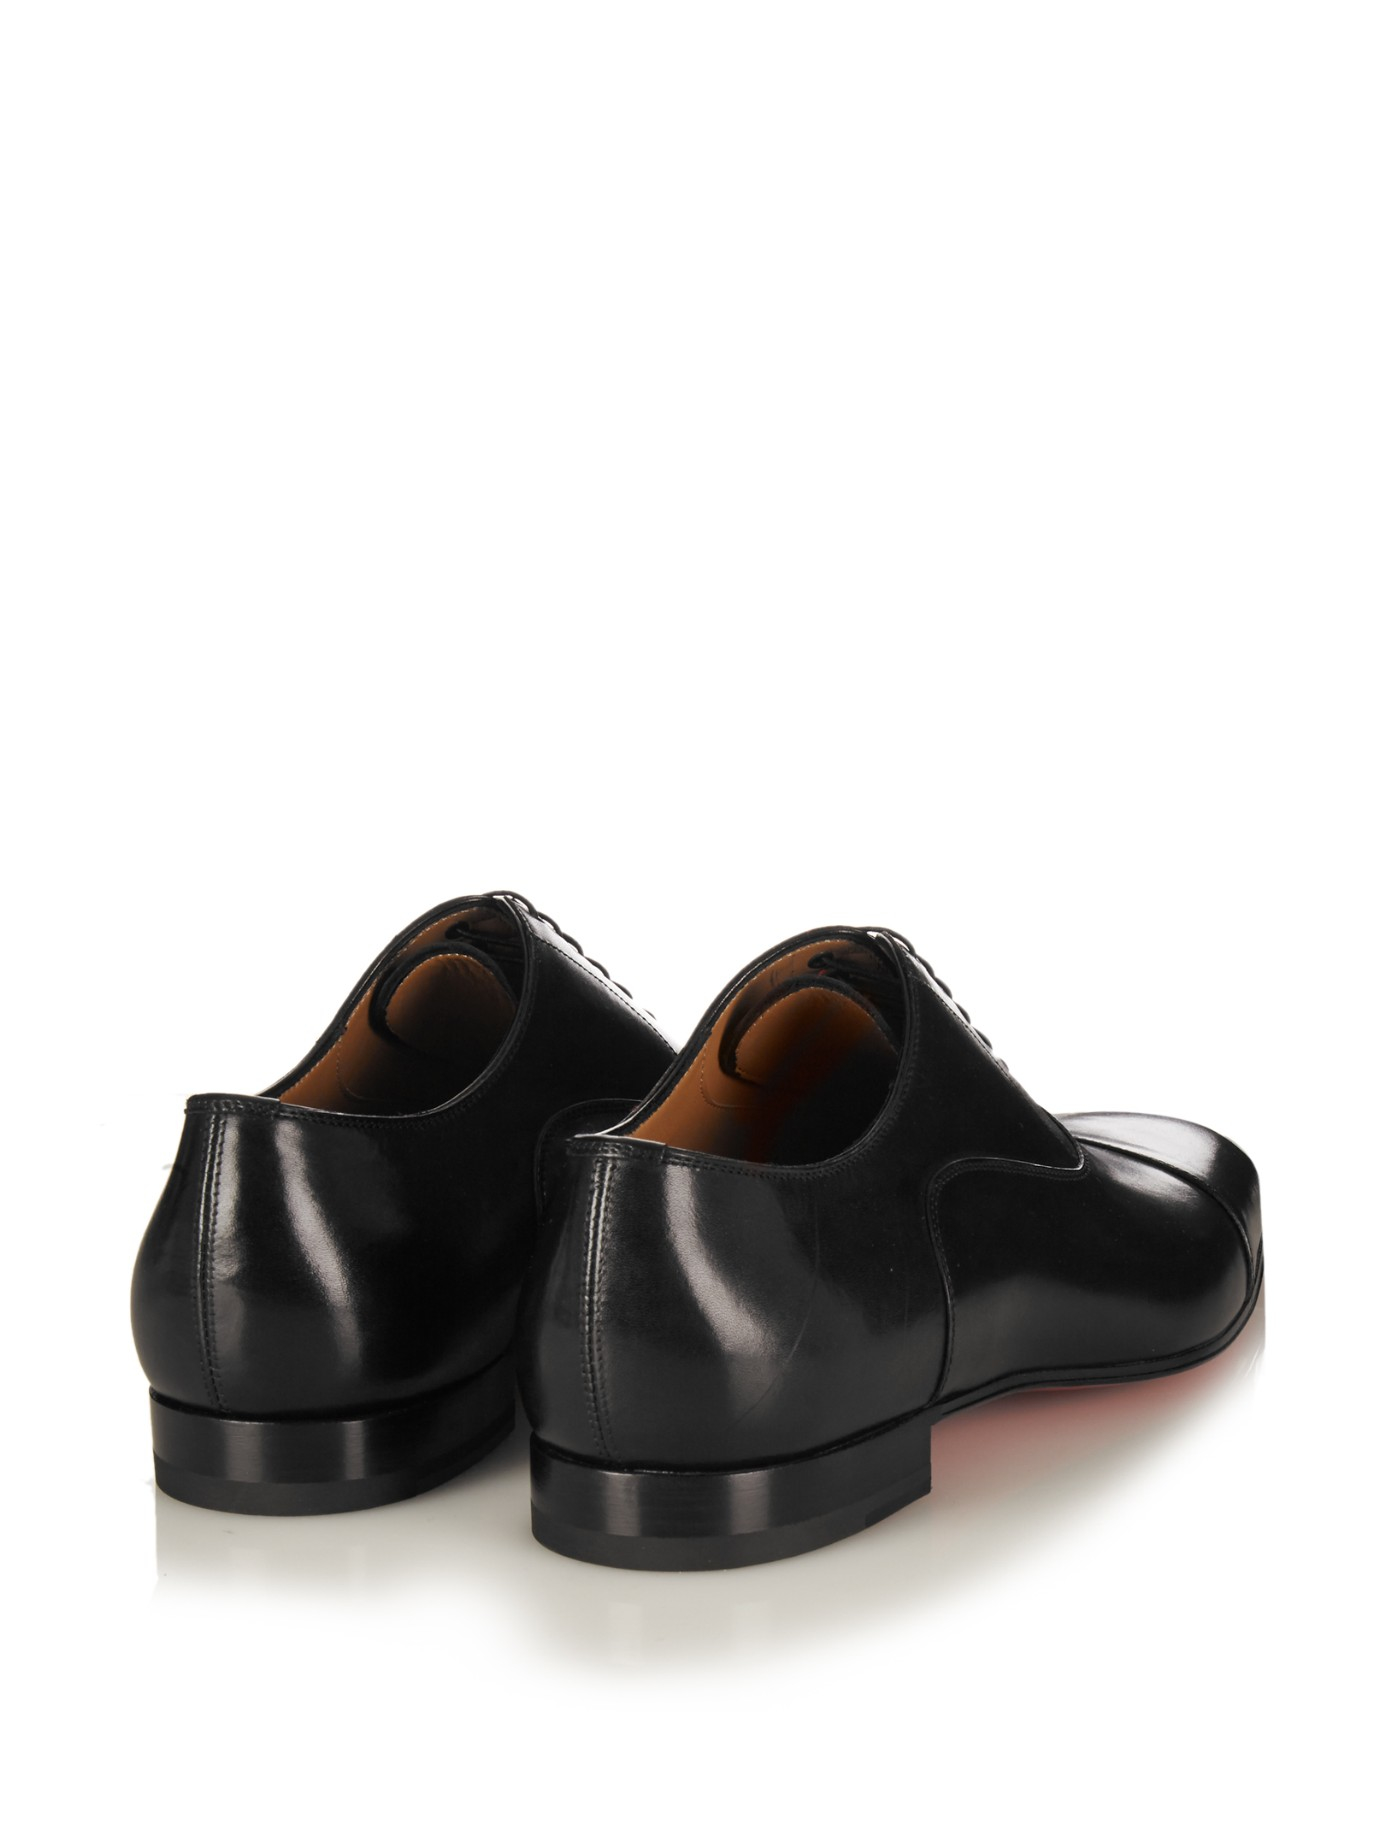 d7d711b9b113 Lyst - Christian Louboutin Greggo Leather Lace-up Shoes in Black for Men